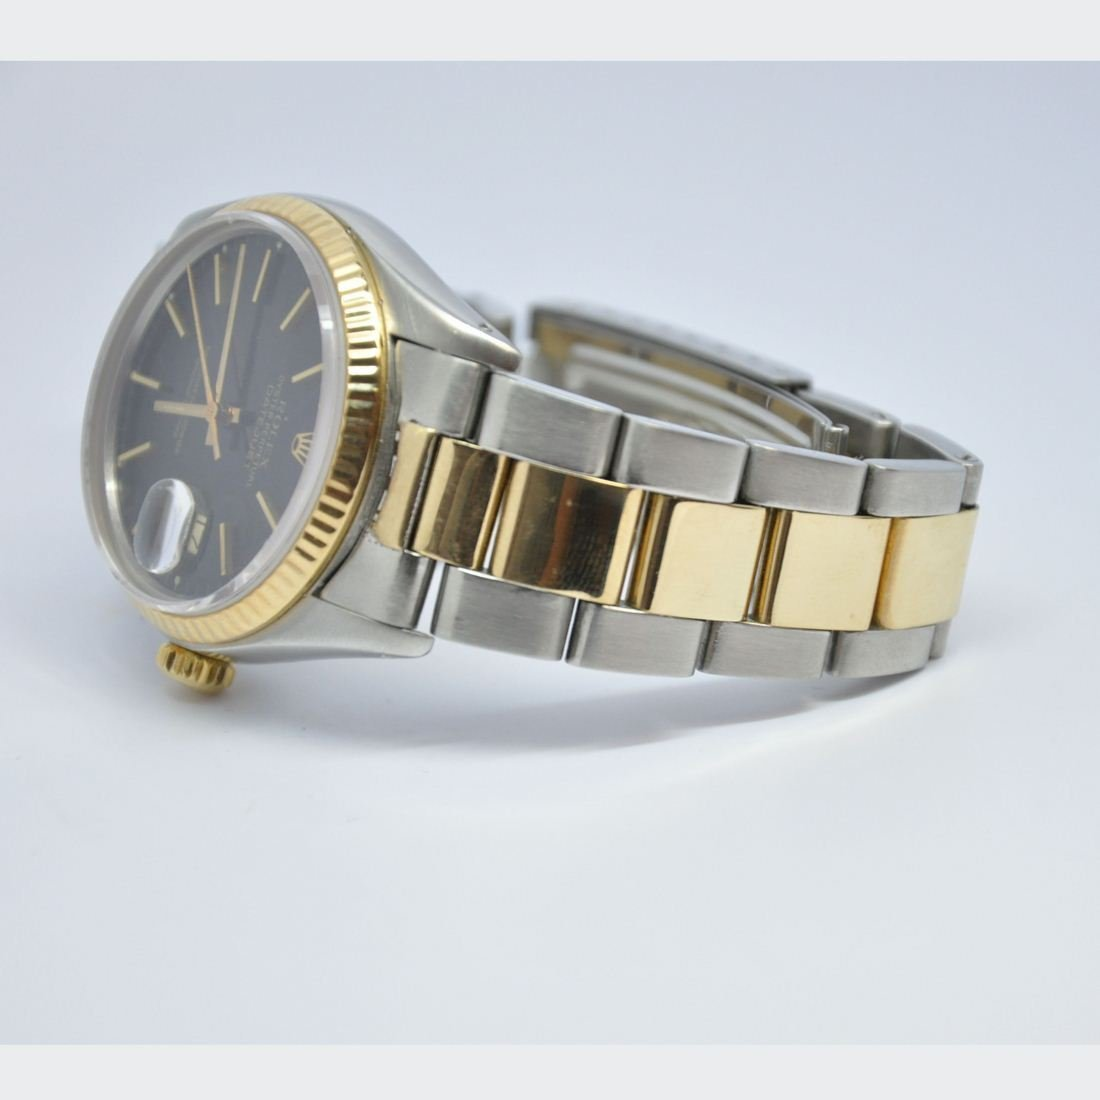 Rolex Oyster Perpetual DateJust Day-date 2 Two tone - 6